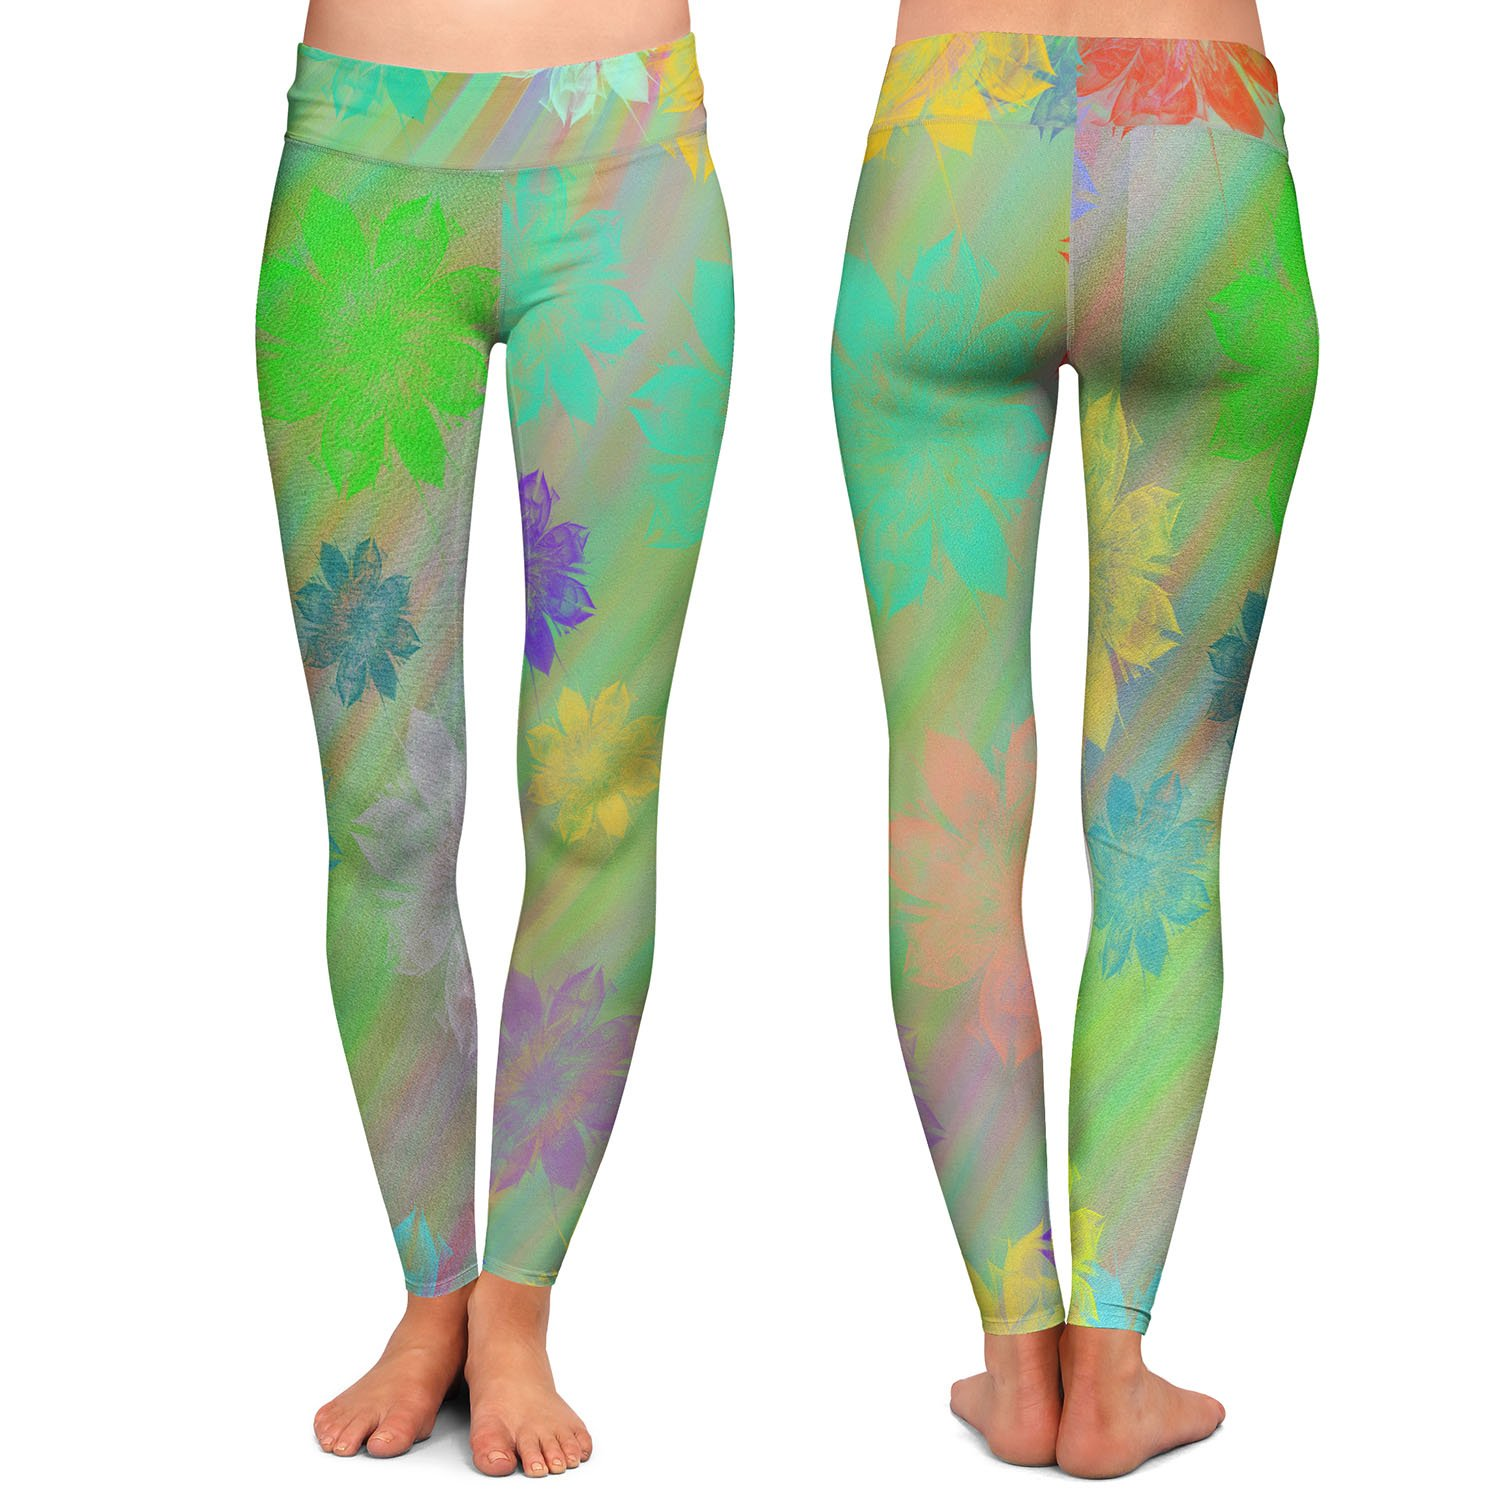 Spring Shower Athletic Yoga Leggings from DiaNoche Designs by Pam Amos